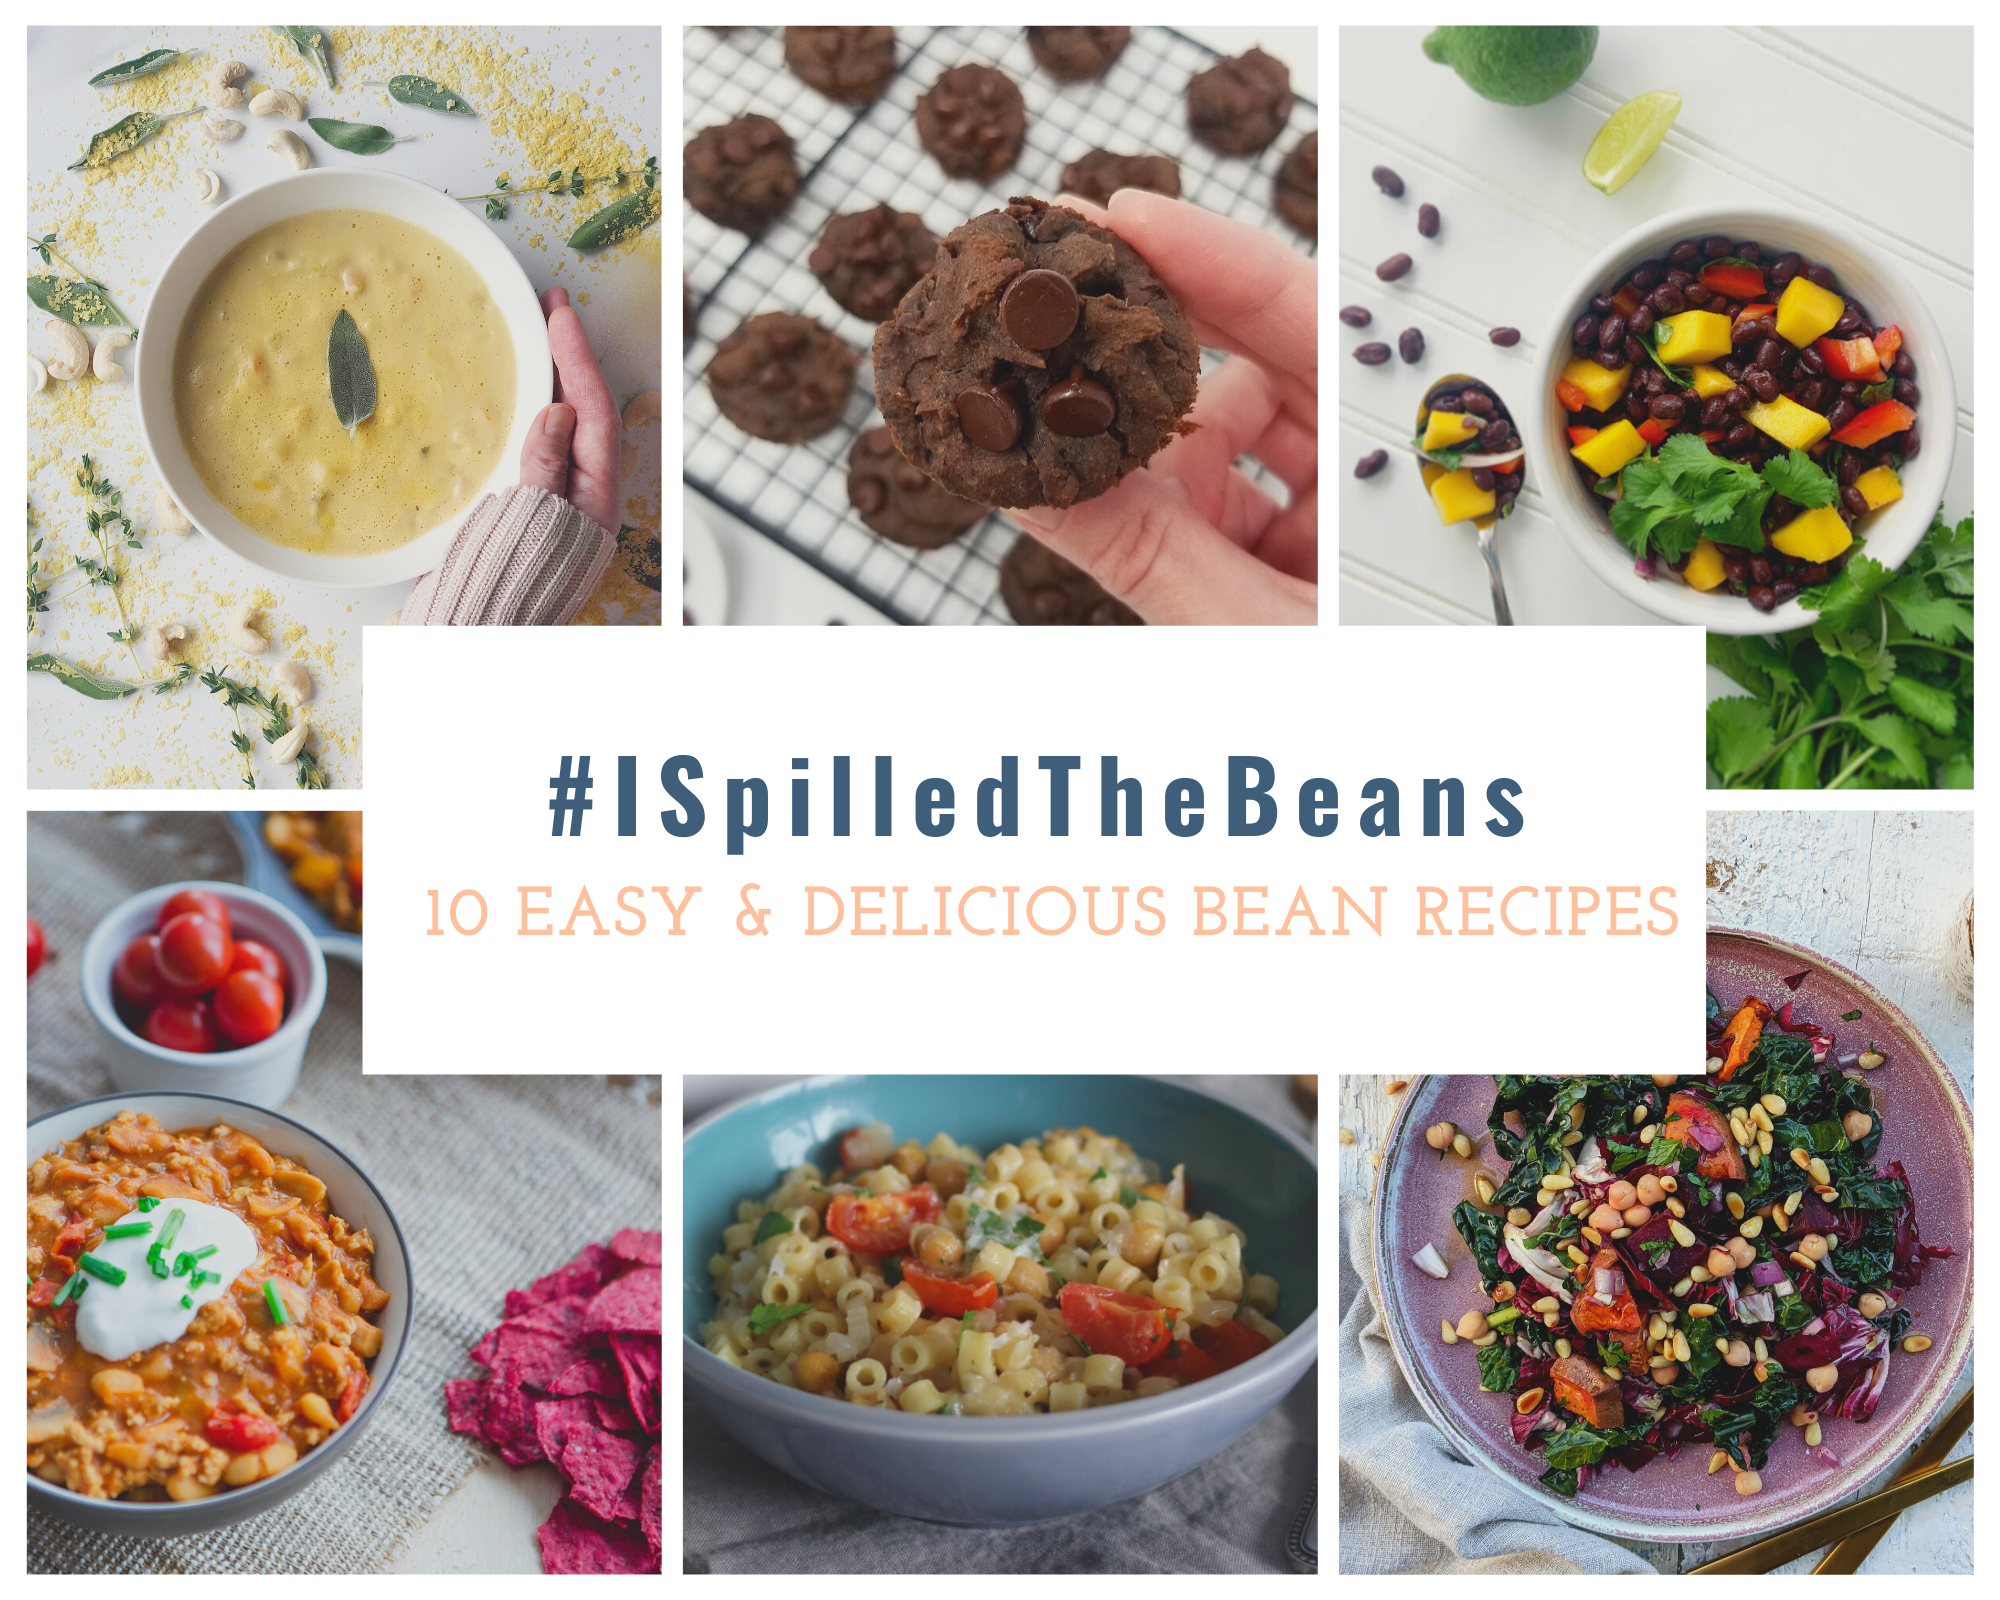 #ISpilledTheBeans